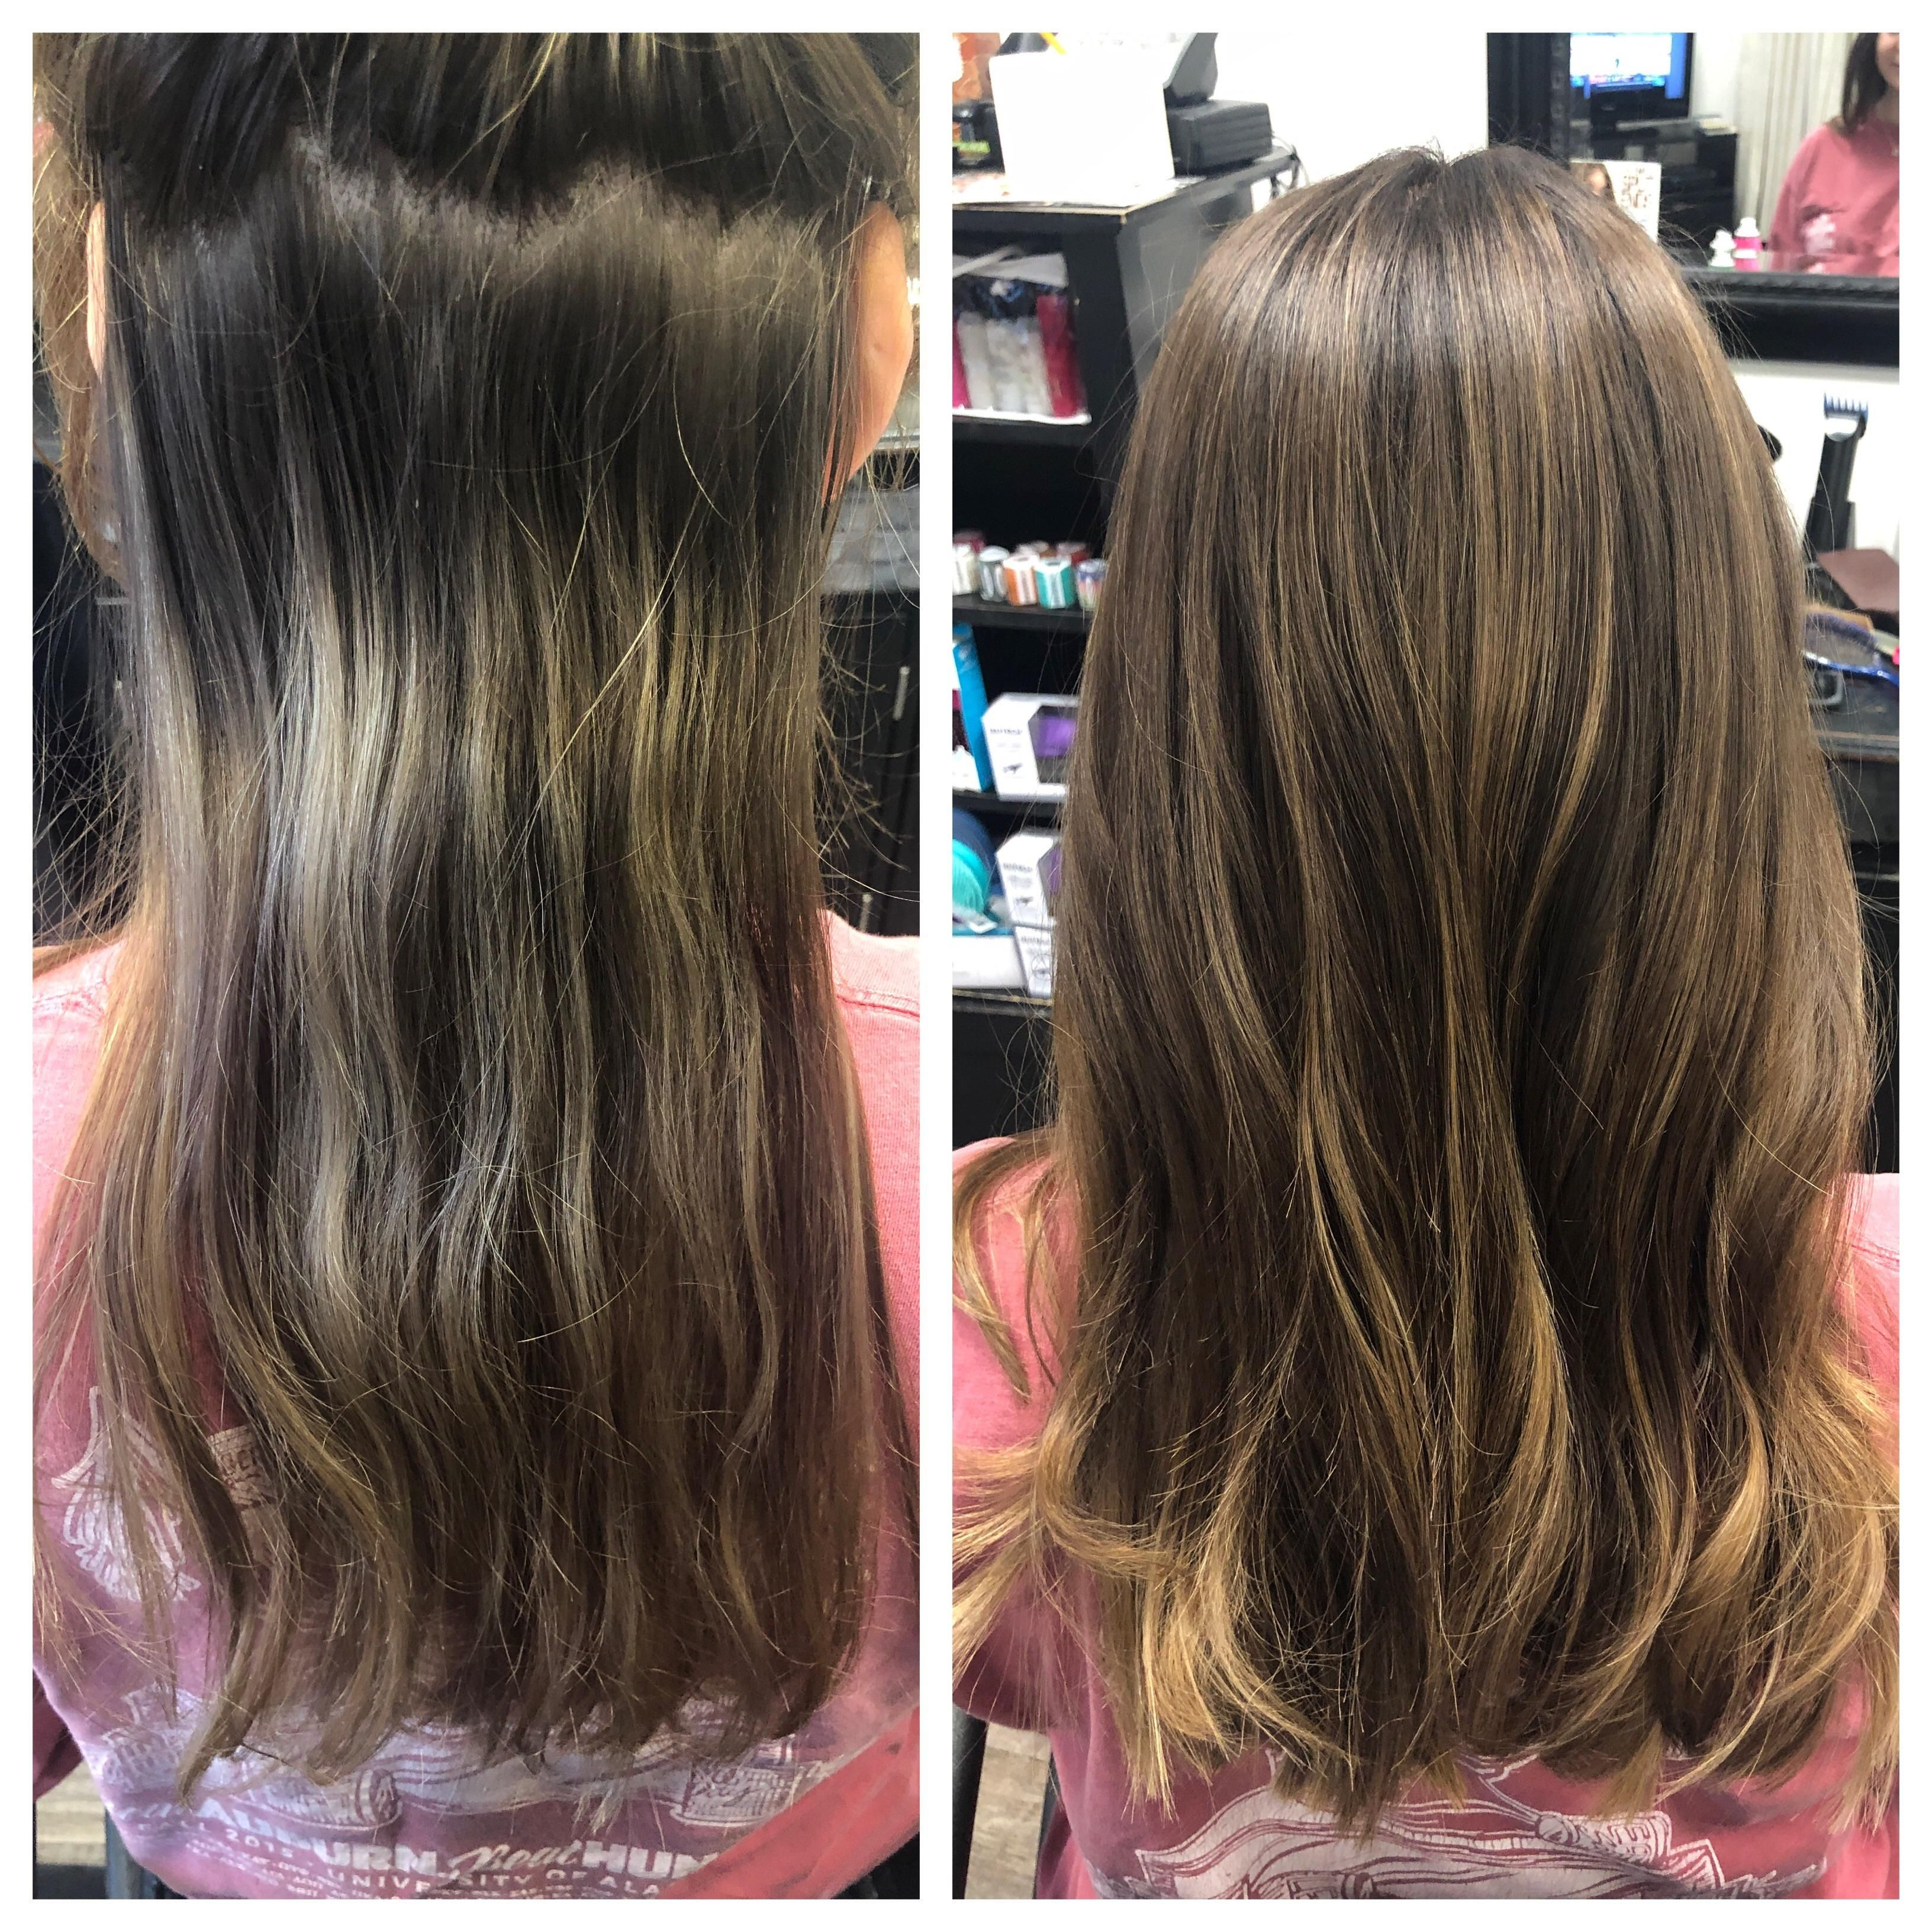 We Successfully Fixed This Bad Dye Job I Had Posted A Few Weeks Ago A Pic Of My Hair Done And Thought I Loved It But I Realized Hair Hairdo Keratin